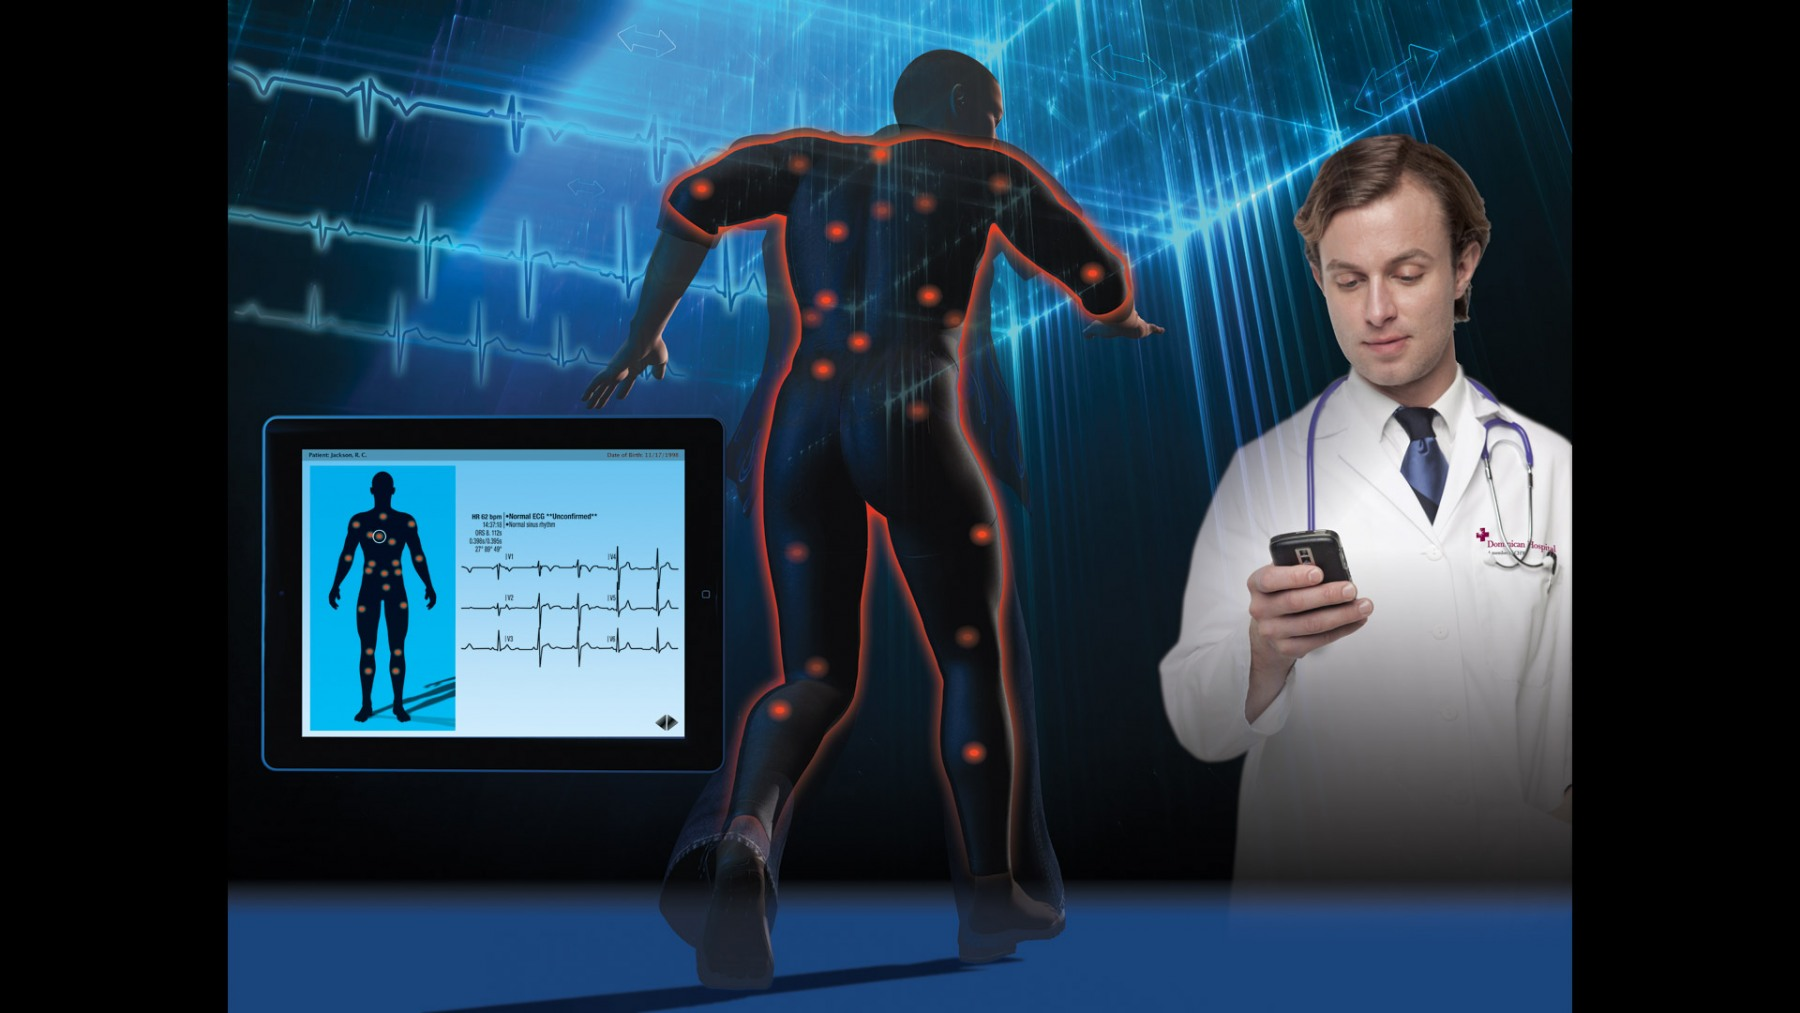 BODY SUIT MONITORING